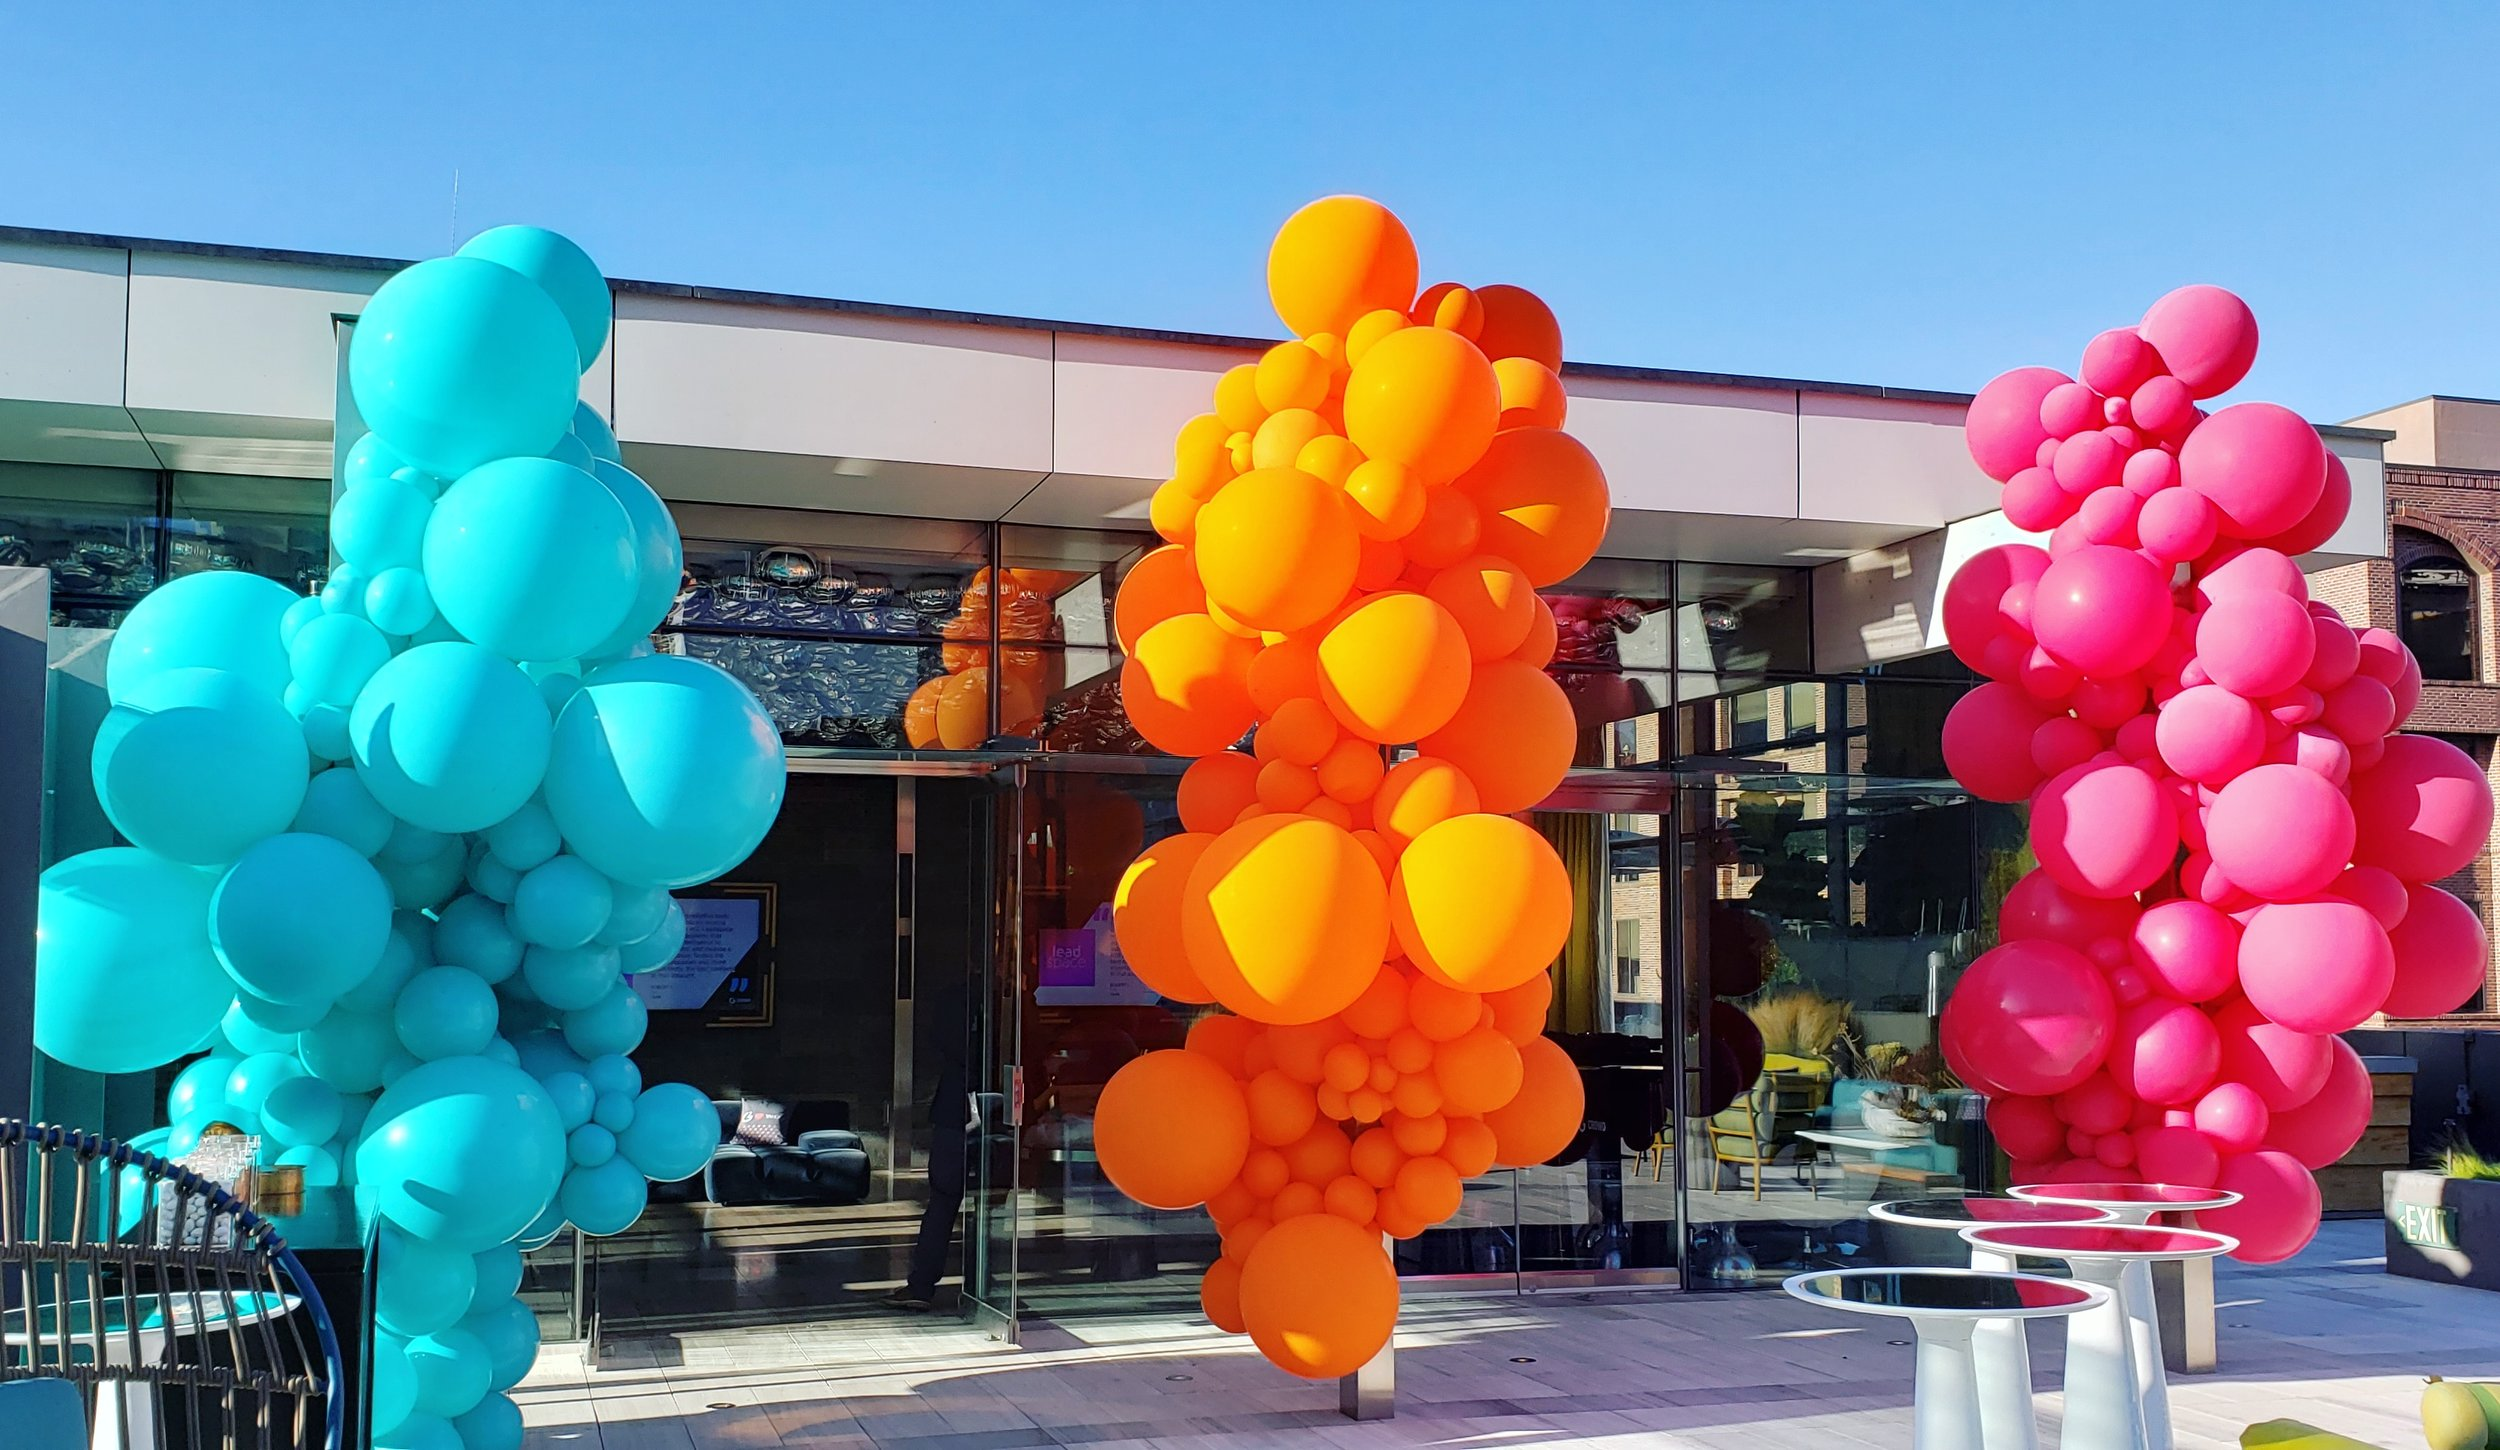 Bespoke Balloons SF balloon Delivery - The Battery SF Penthouse Dreamforce - Zim Balloons.jpg